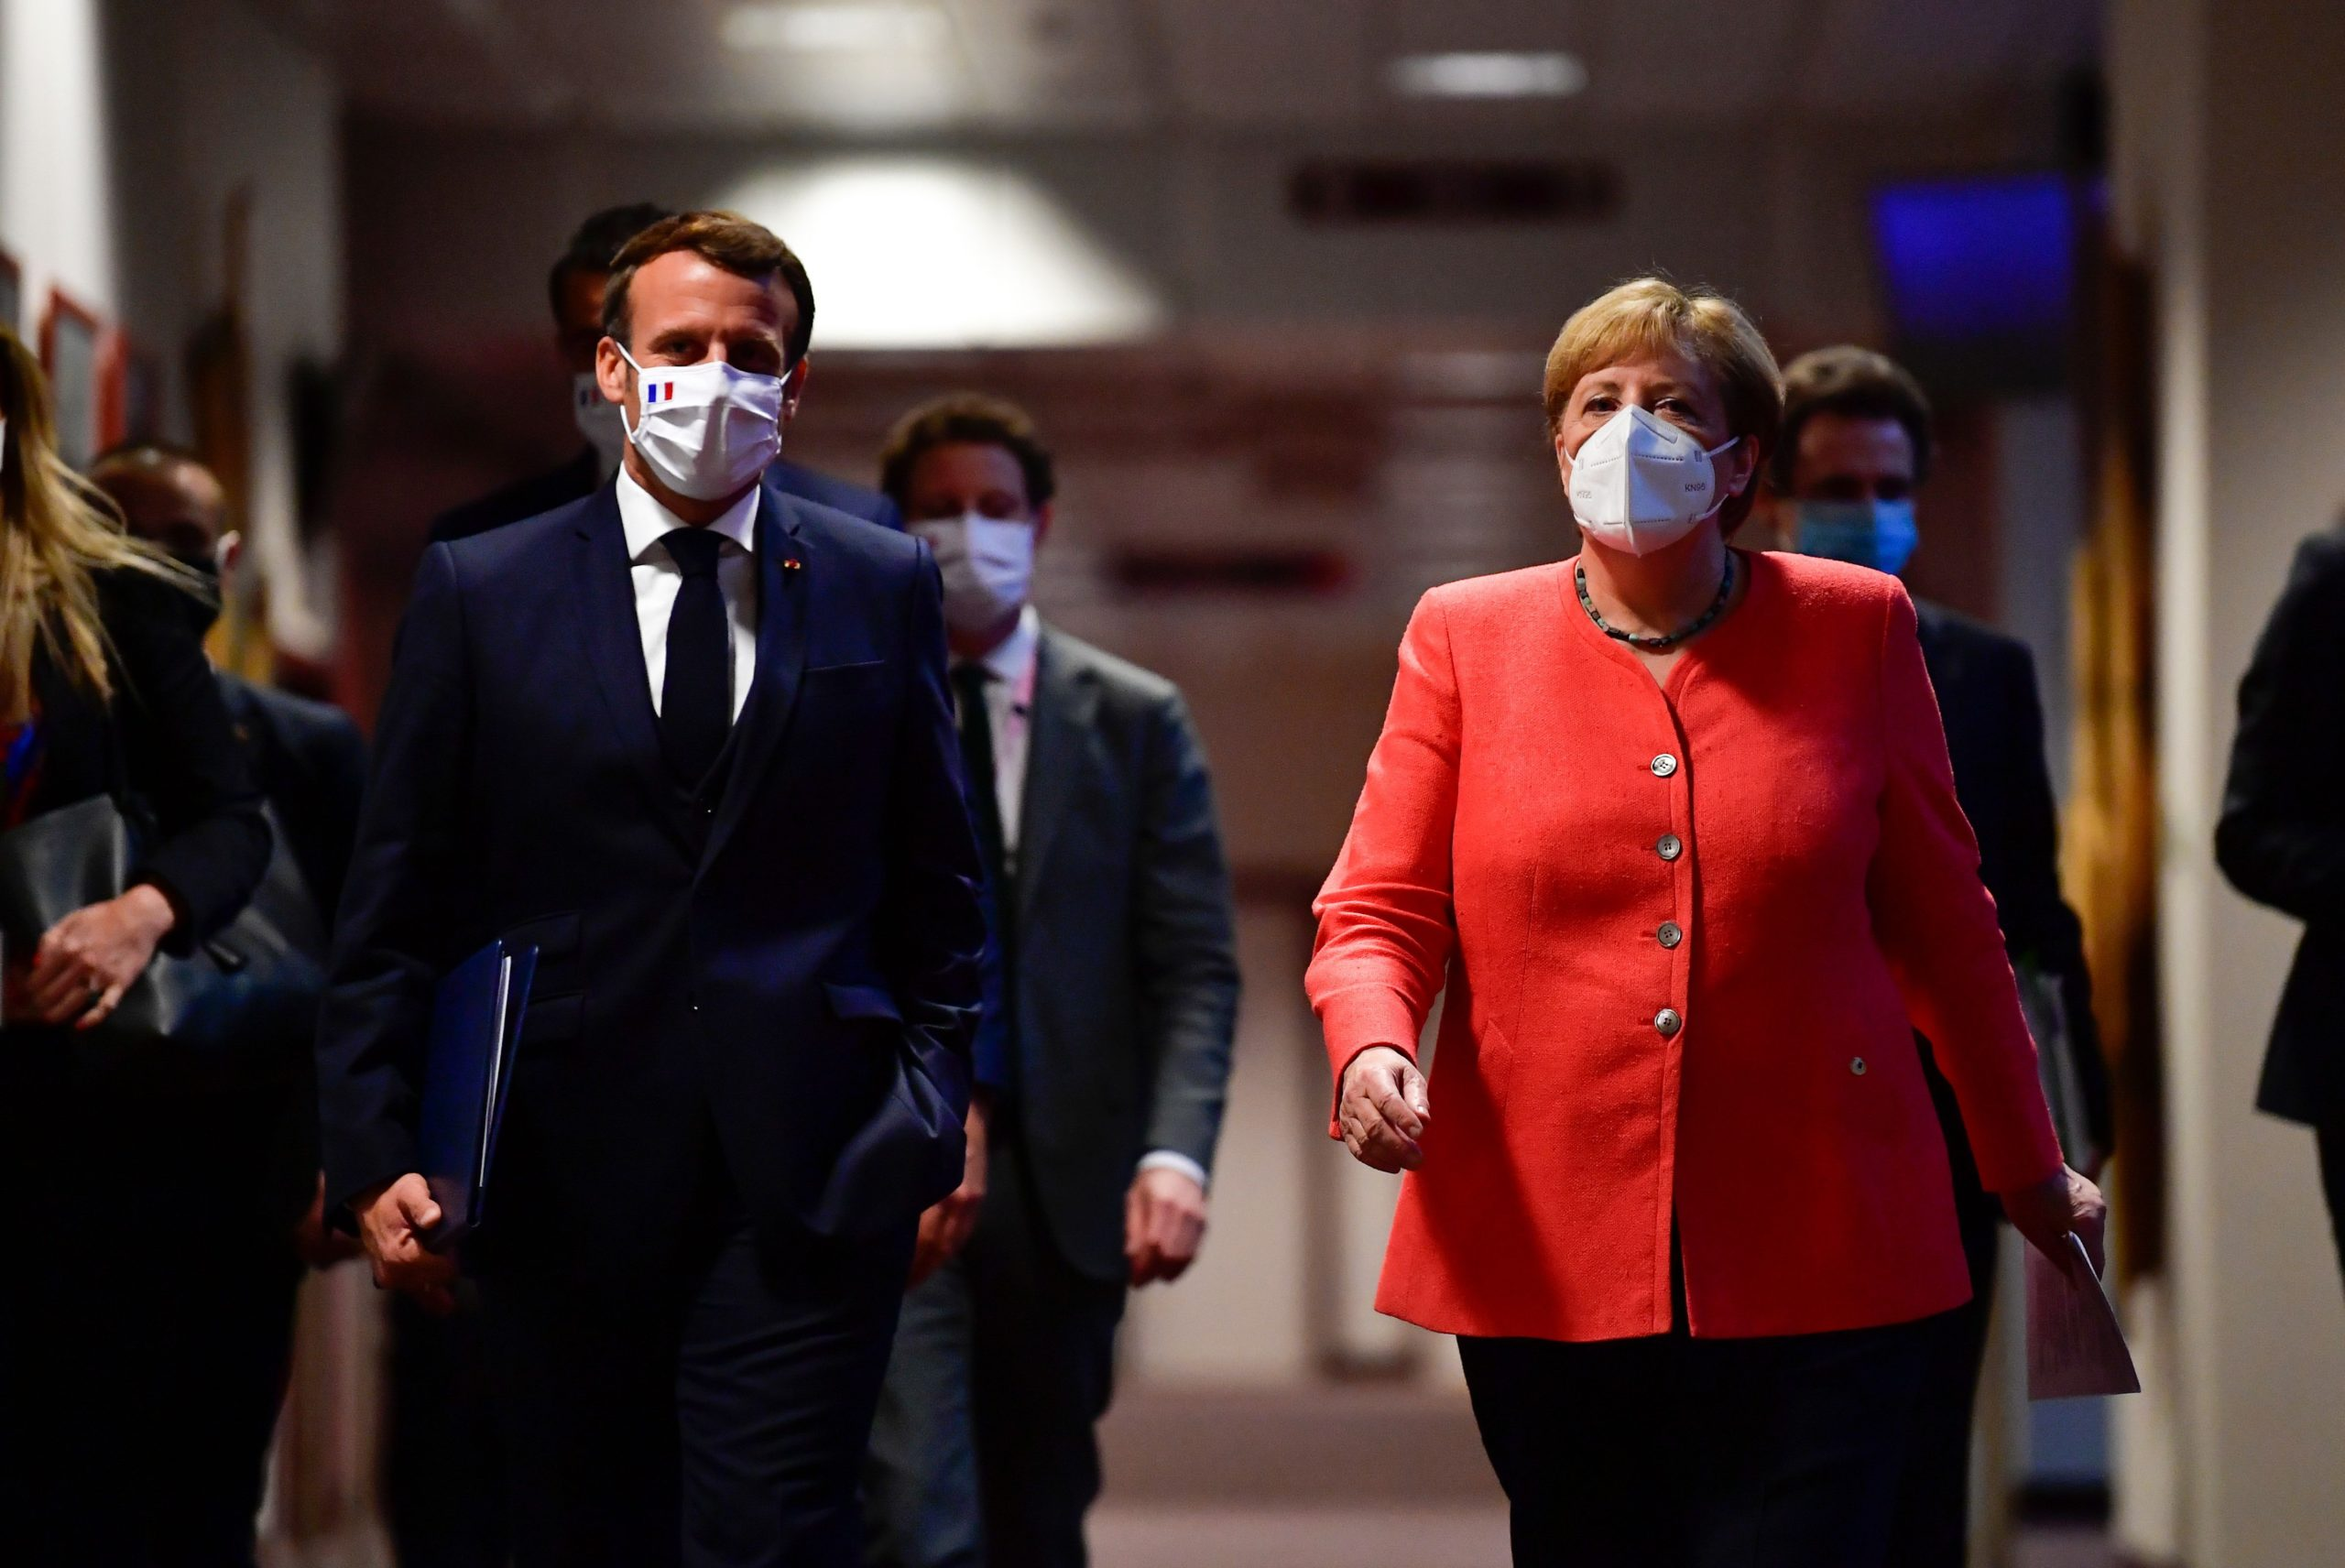 German Chancellor Angela Merkel (R) and French President Emmanuel Macron (L) arrive for a joint press conference at the end of the European summit at the EU headquarters in Brussels on July 21, 2020.  Photographer: John Thys/AFP/Getty Images